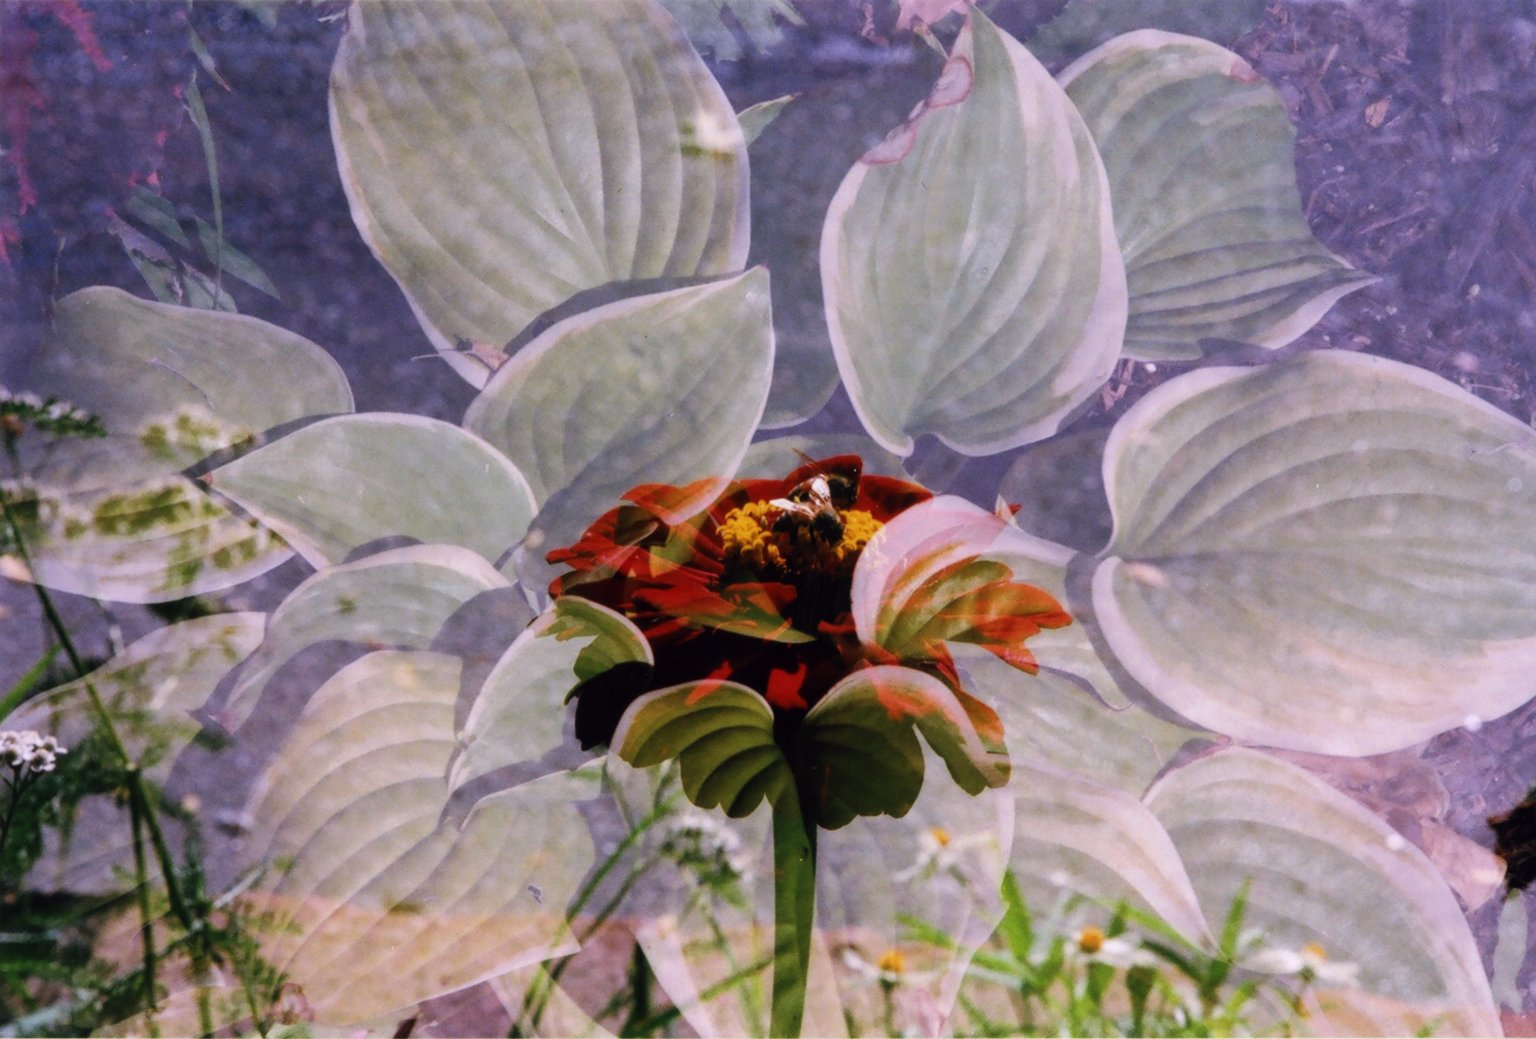 Double Exposure-Red flower over green leaves/Silver and Red